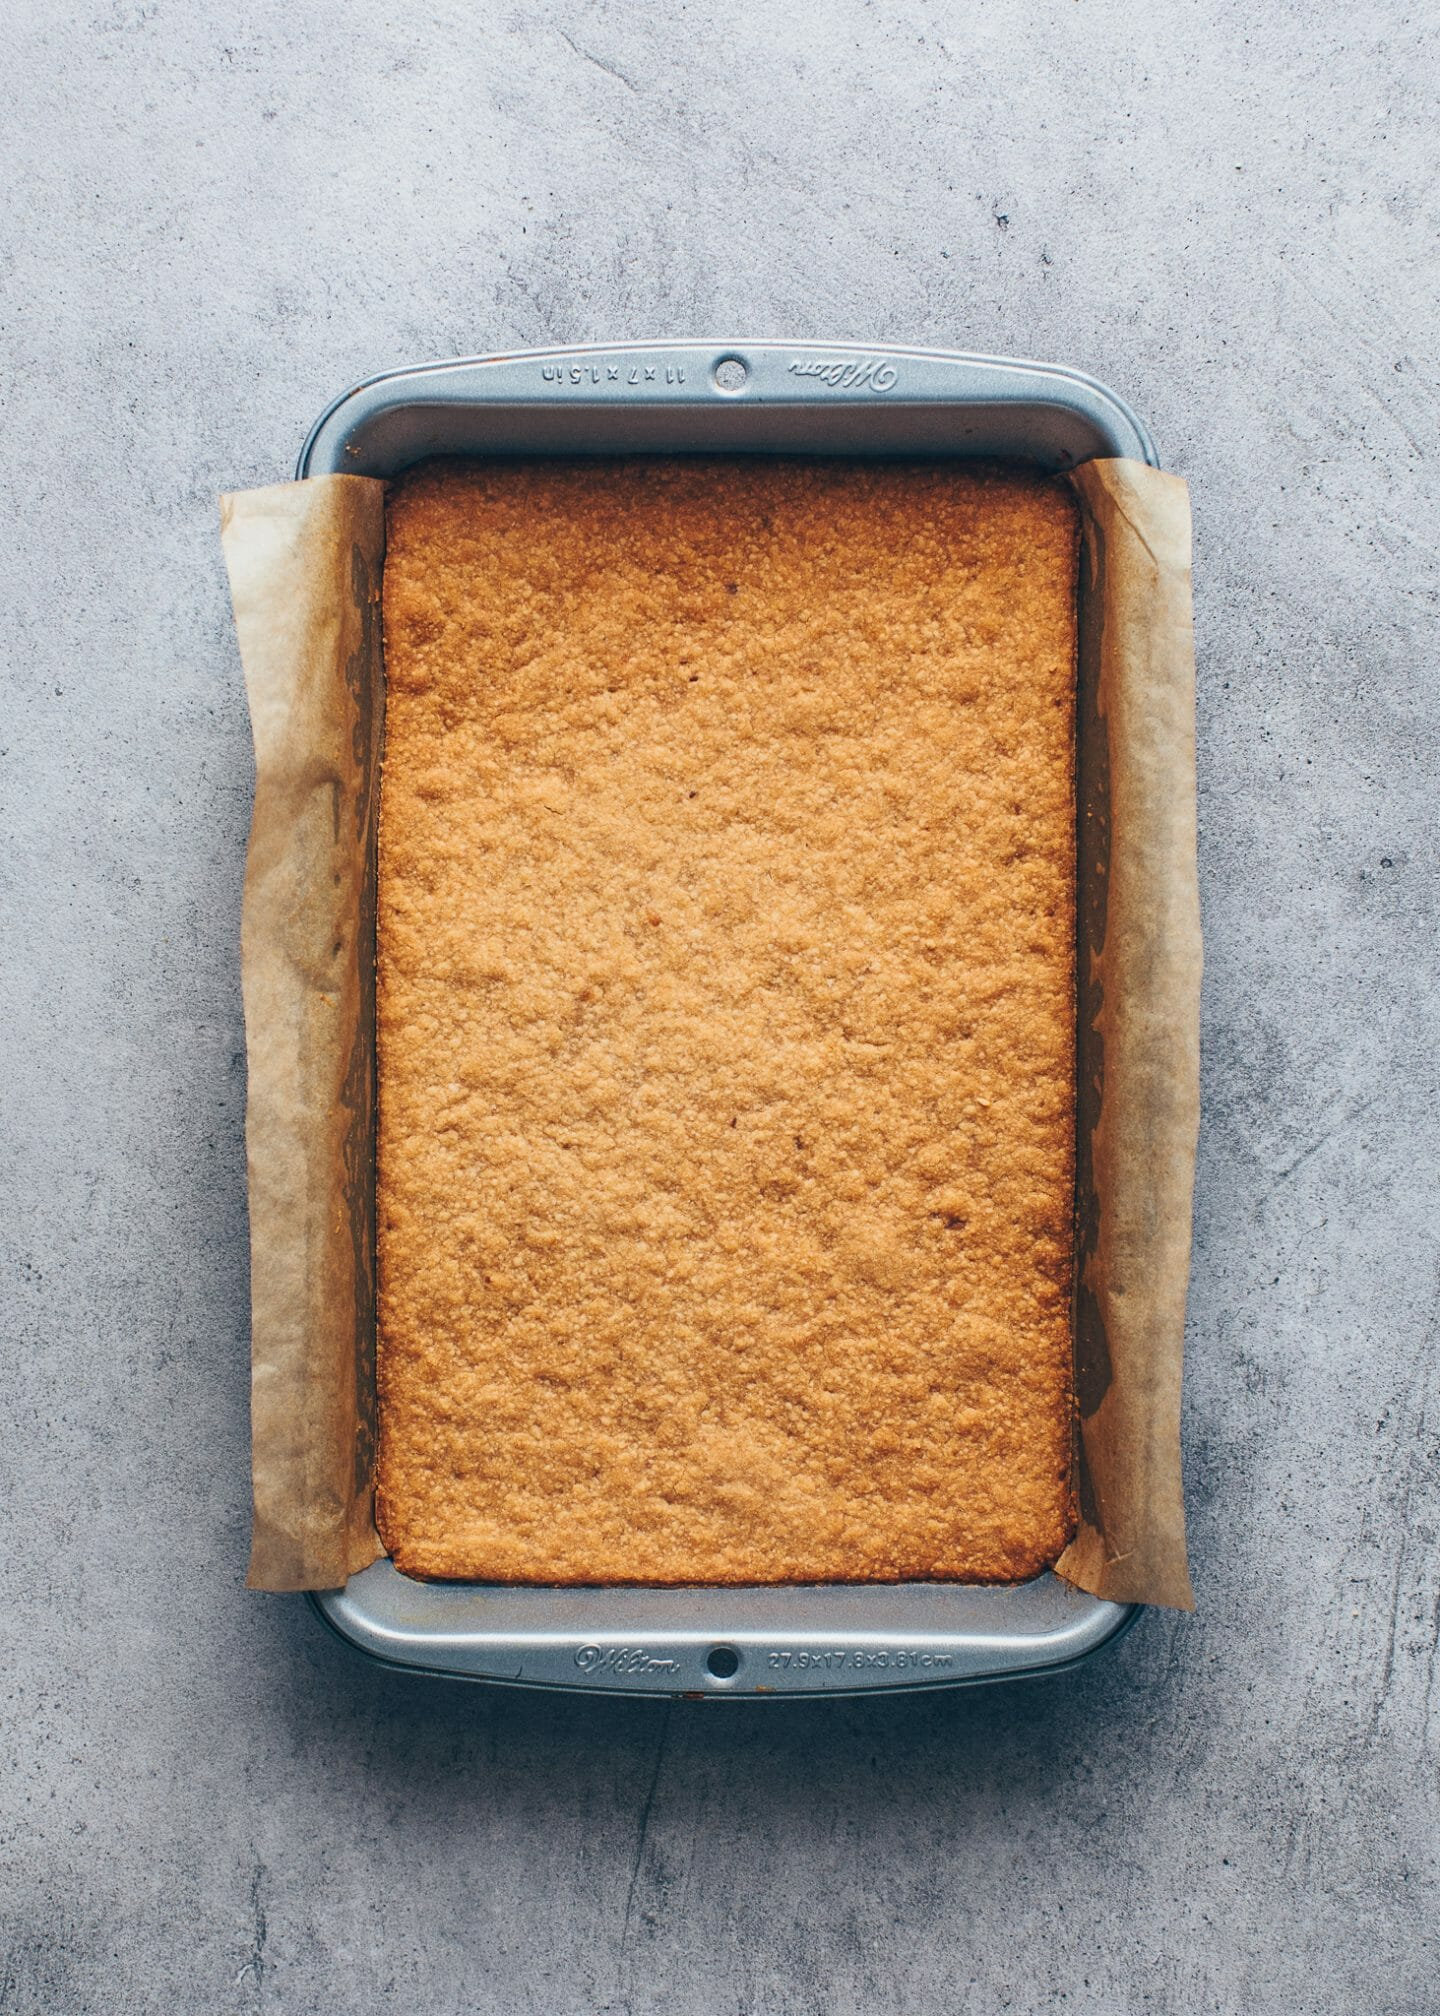 baked cookie crumb crust in a baking pan